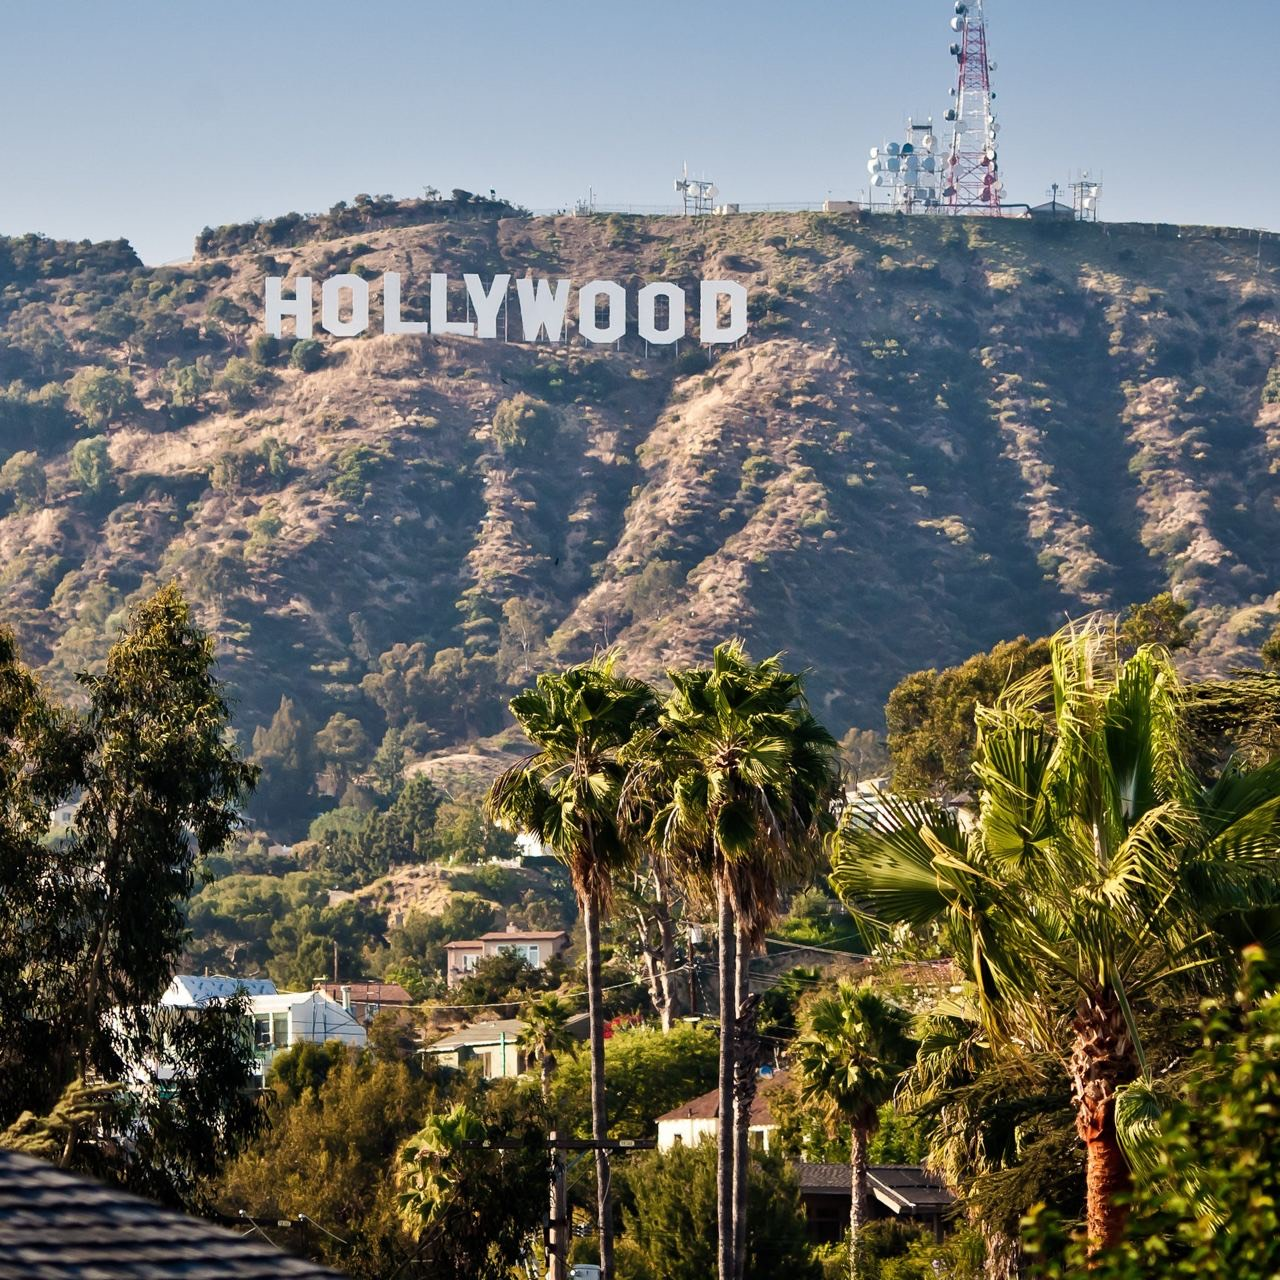 10 Best Places To See The Hollywood Sign